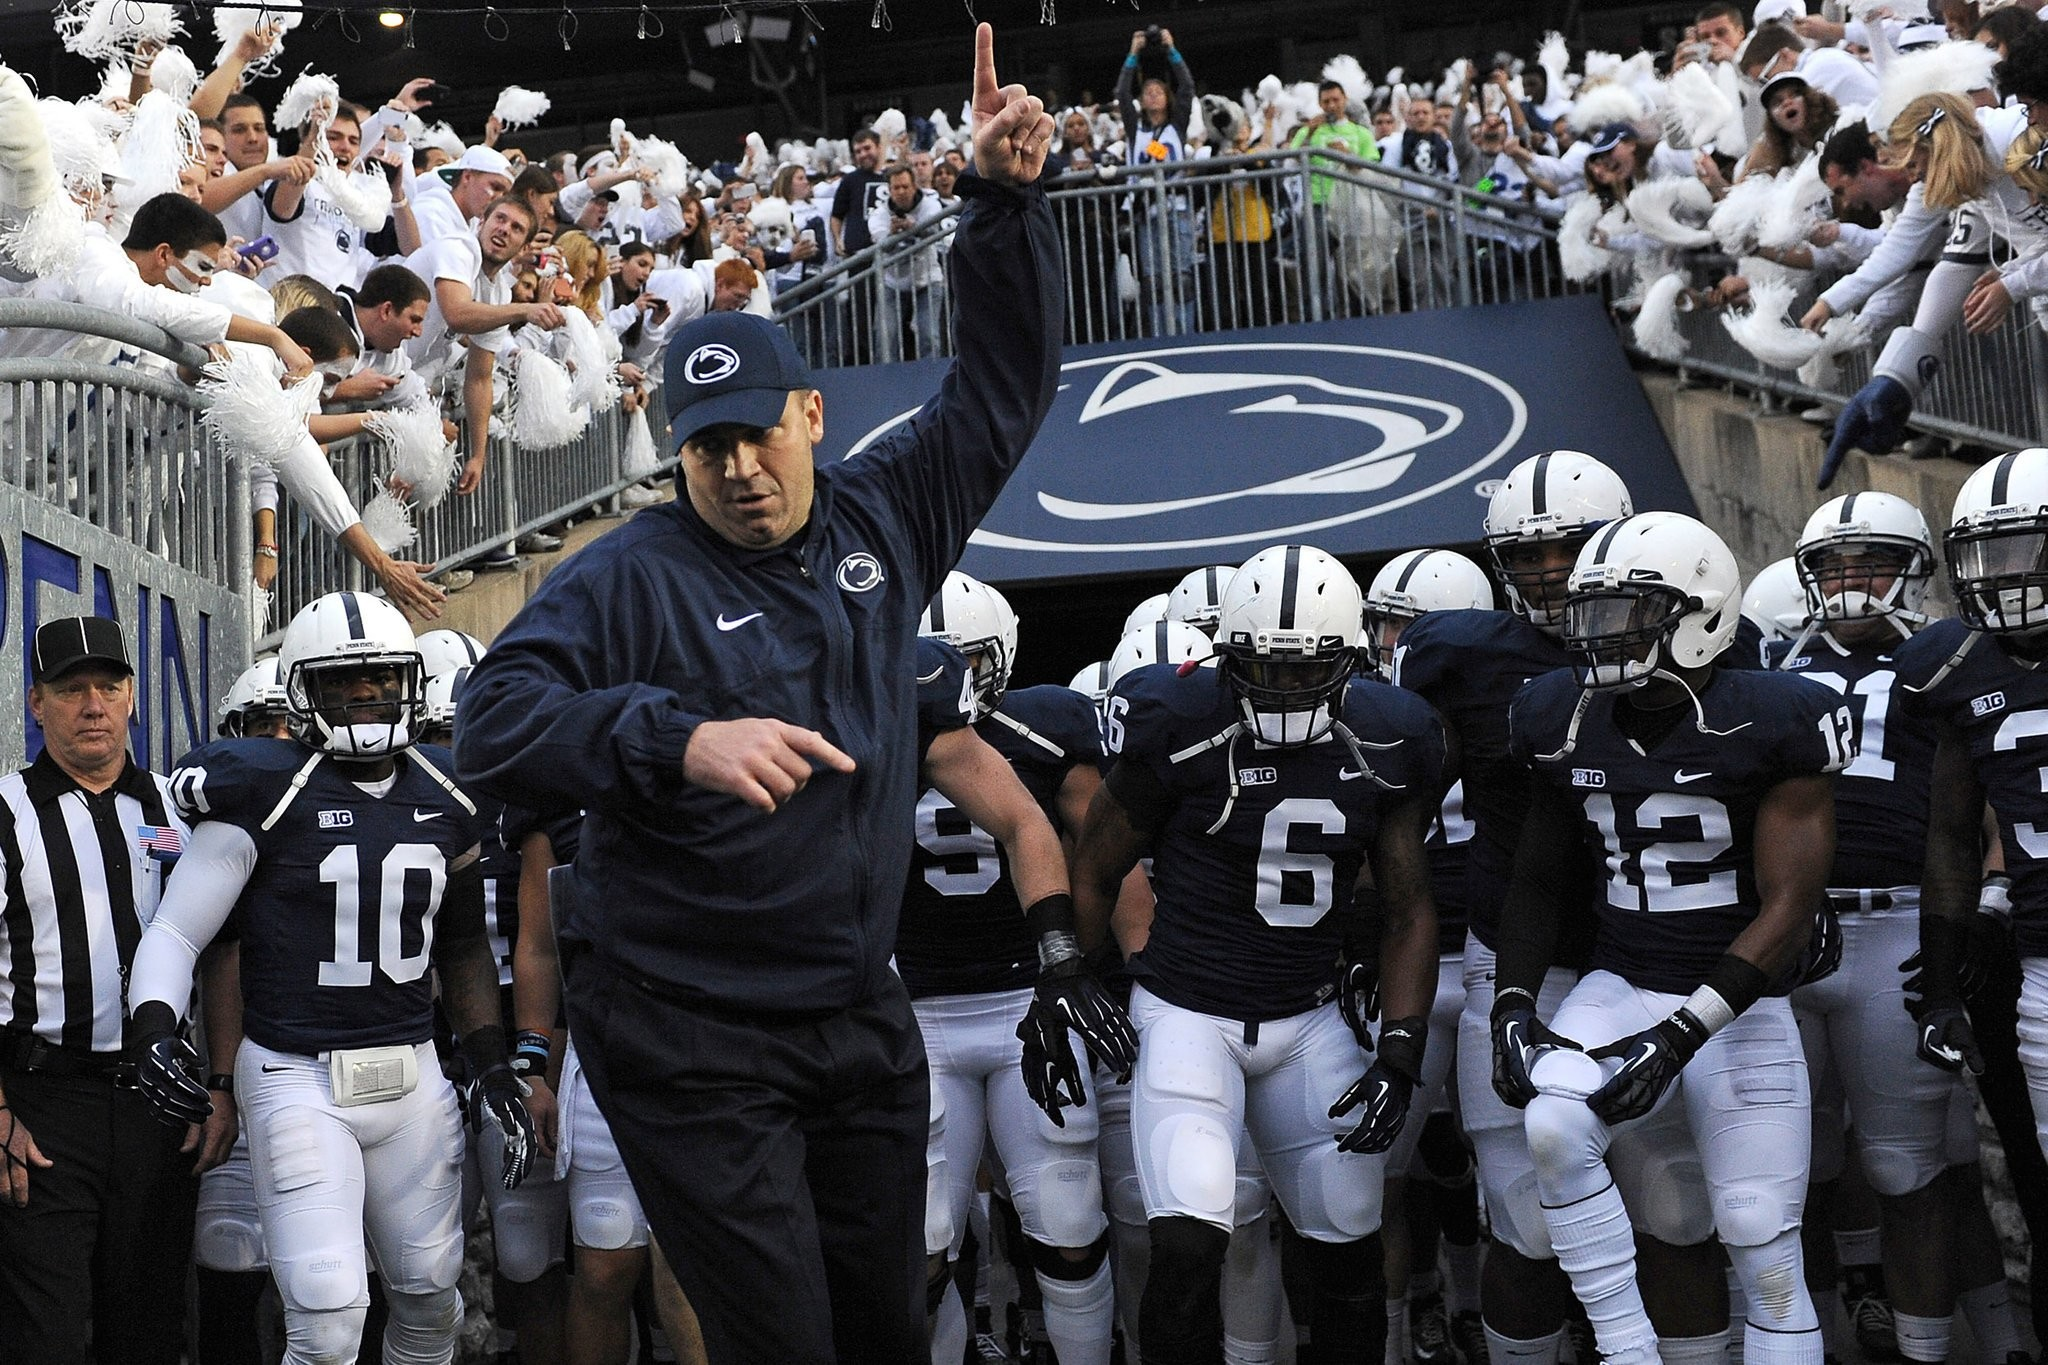 PENN STATE NITTANY LIONS college football wallpaper     595786    WallpaperUP